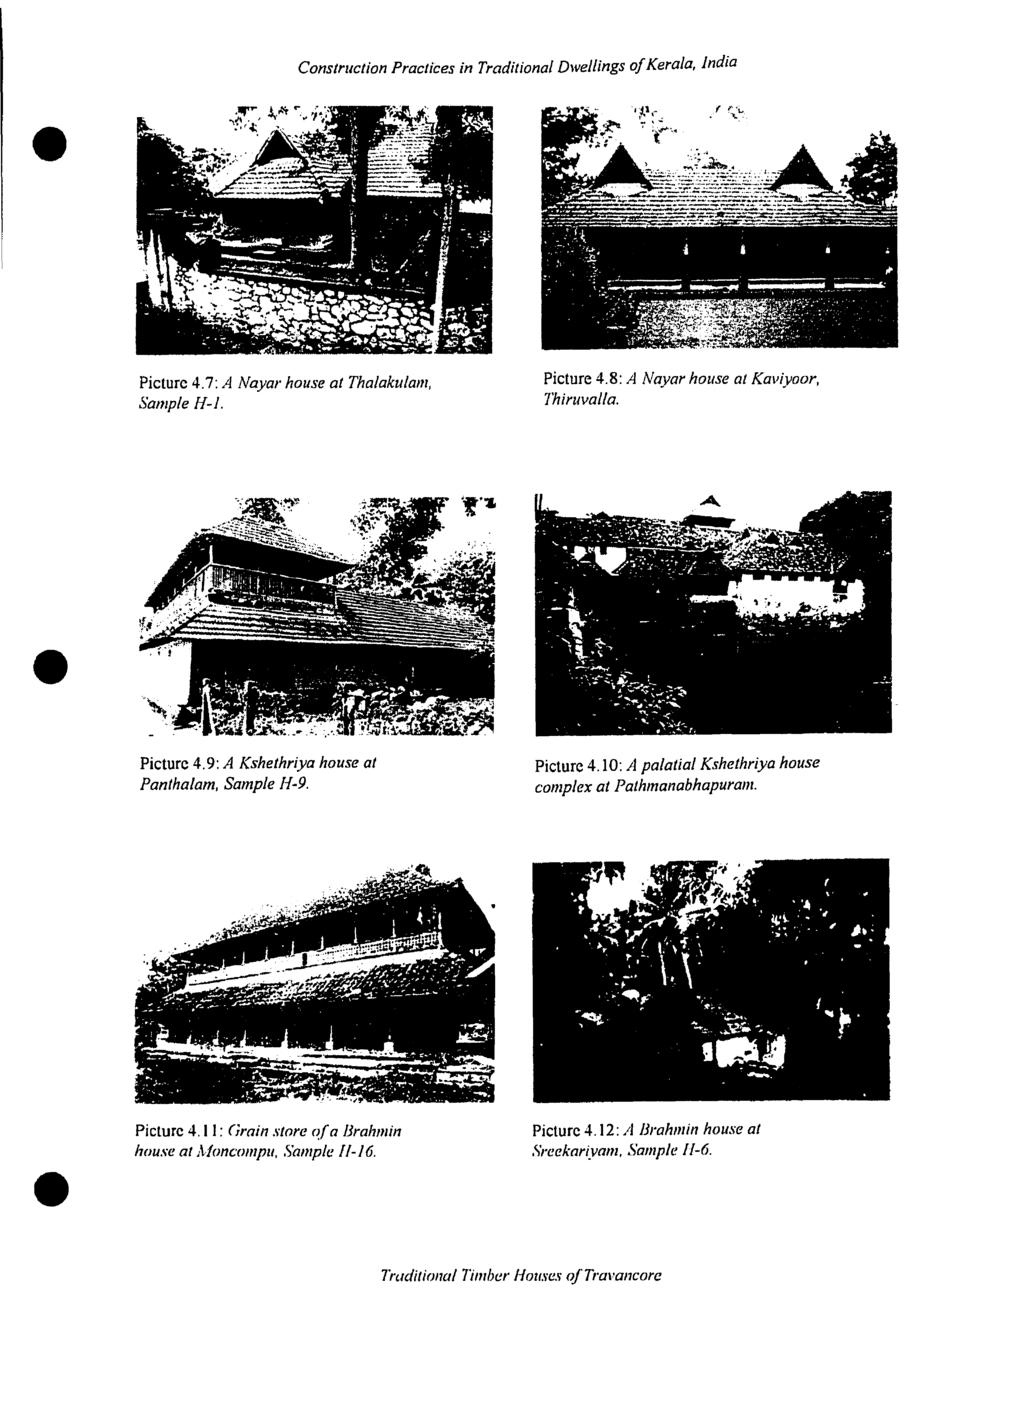 Construction Praclices in Traditional Dwe//ings ofkerala, india Picturc 4.7: A Nayar house at Thalakulam, S'ample [-{-J. Picture 4.8: A Nayar house al Kaviyoor, Thiruva/la. Picturc 4.9: A Kshethriya hause at Pantha/am, Samp/e [-{ 9.